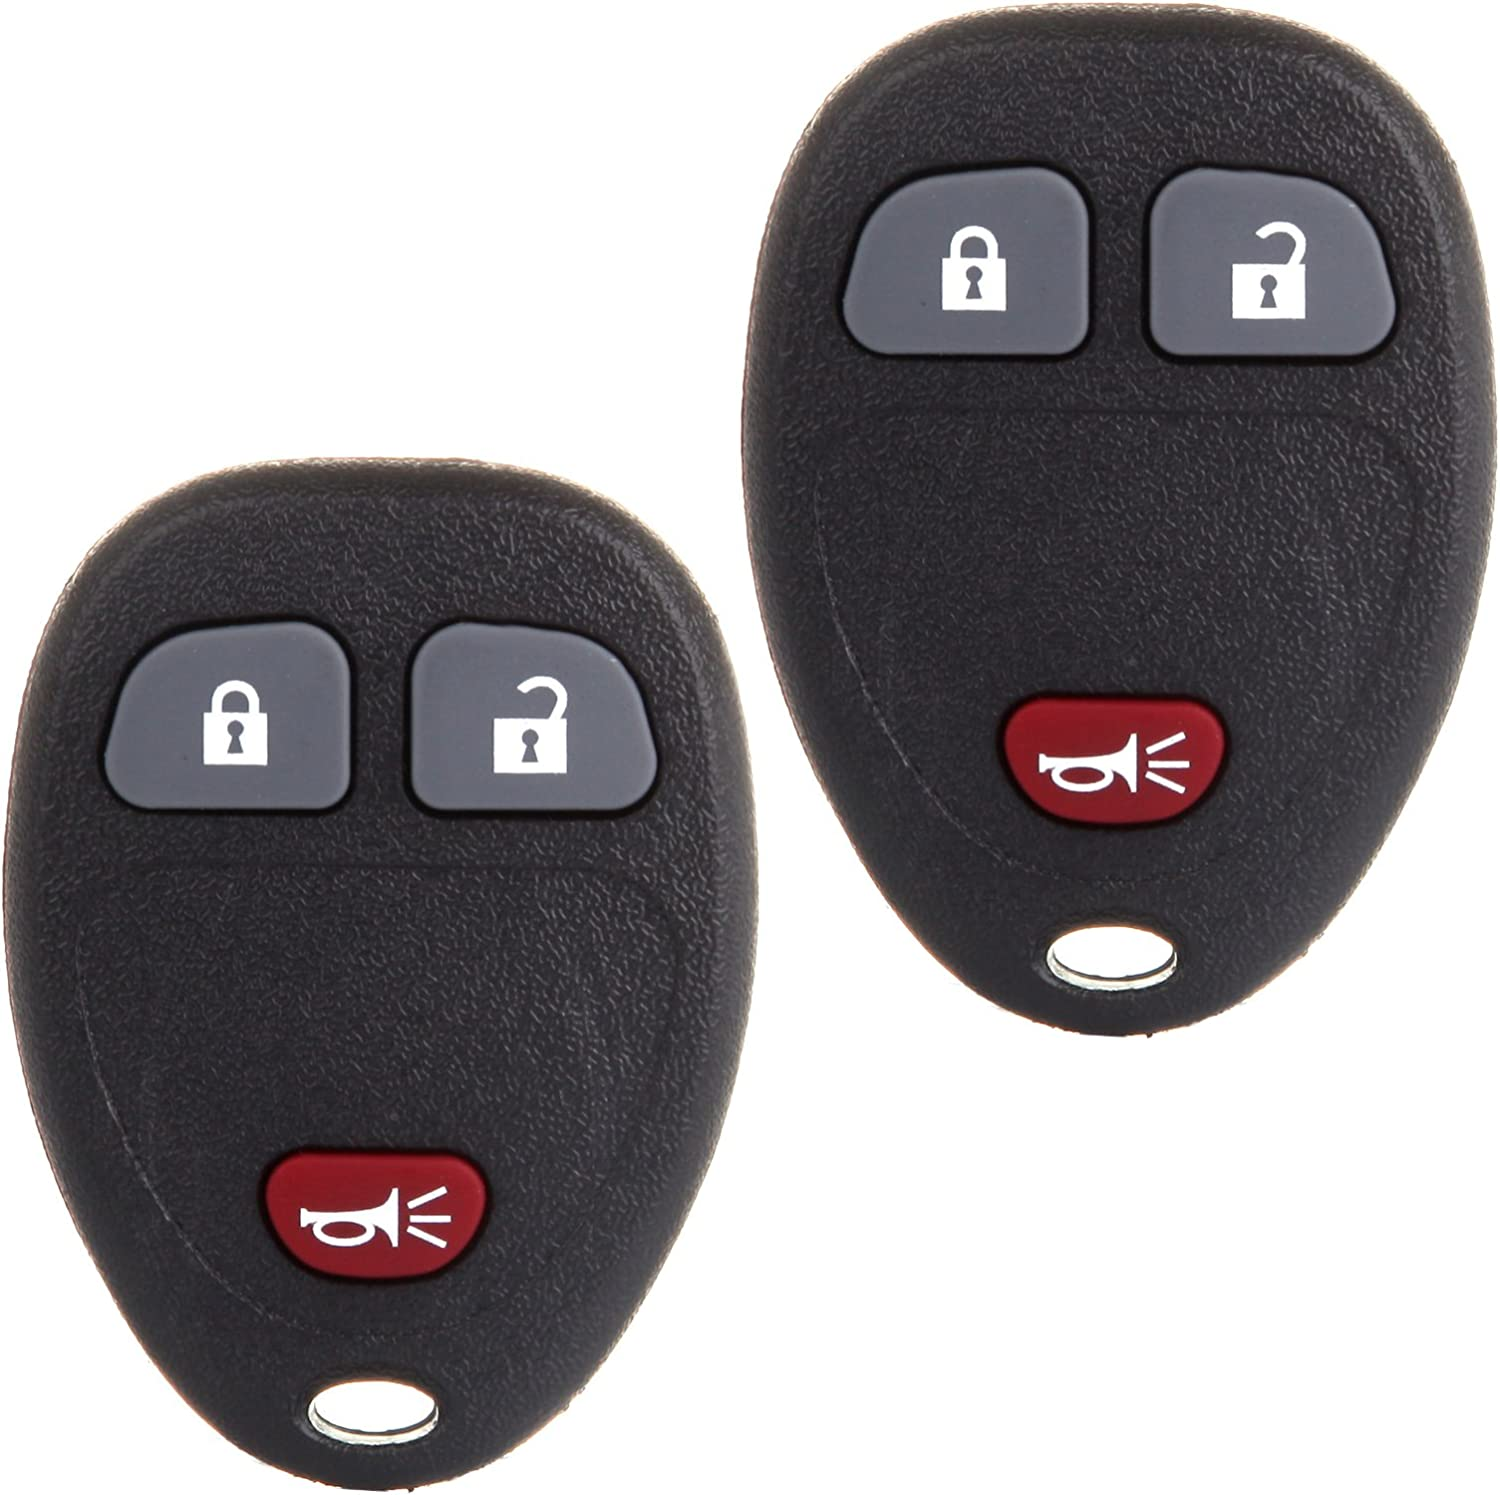 2 Replacement Remote Fob Car Key For 2005 2006 Chevy Uplander